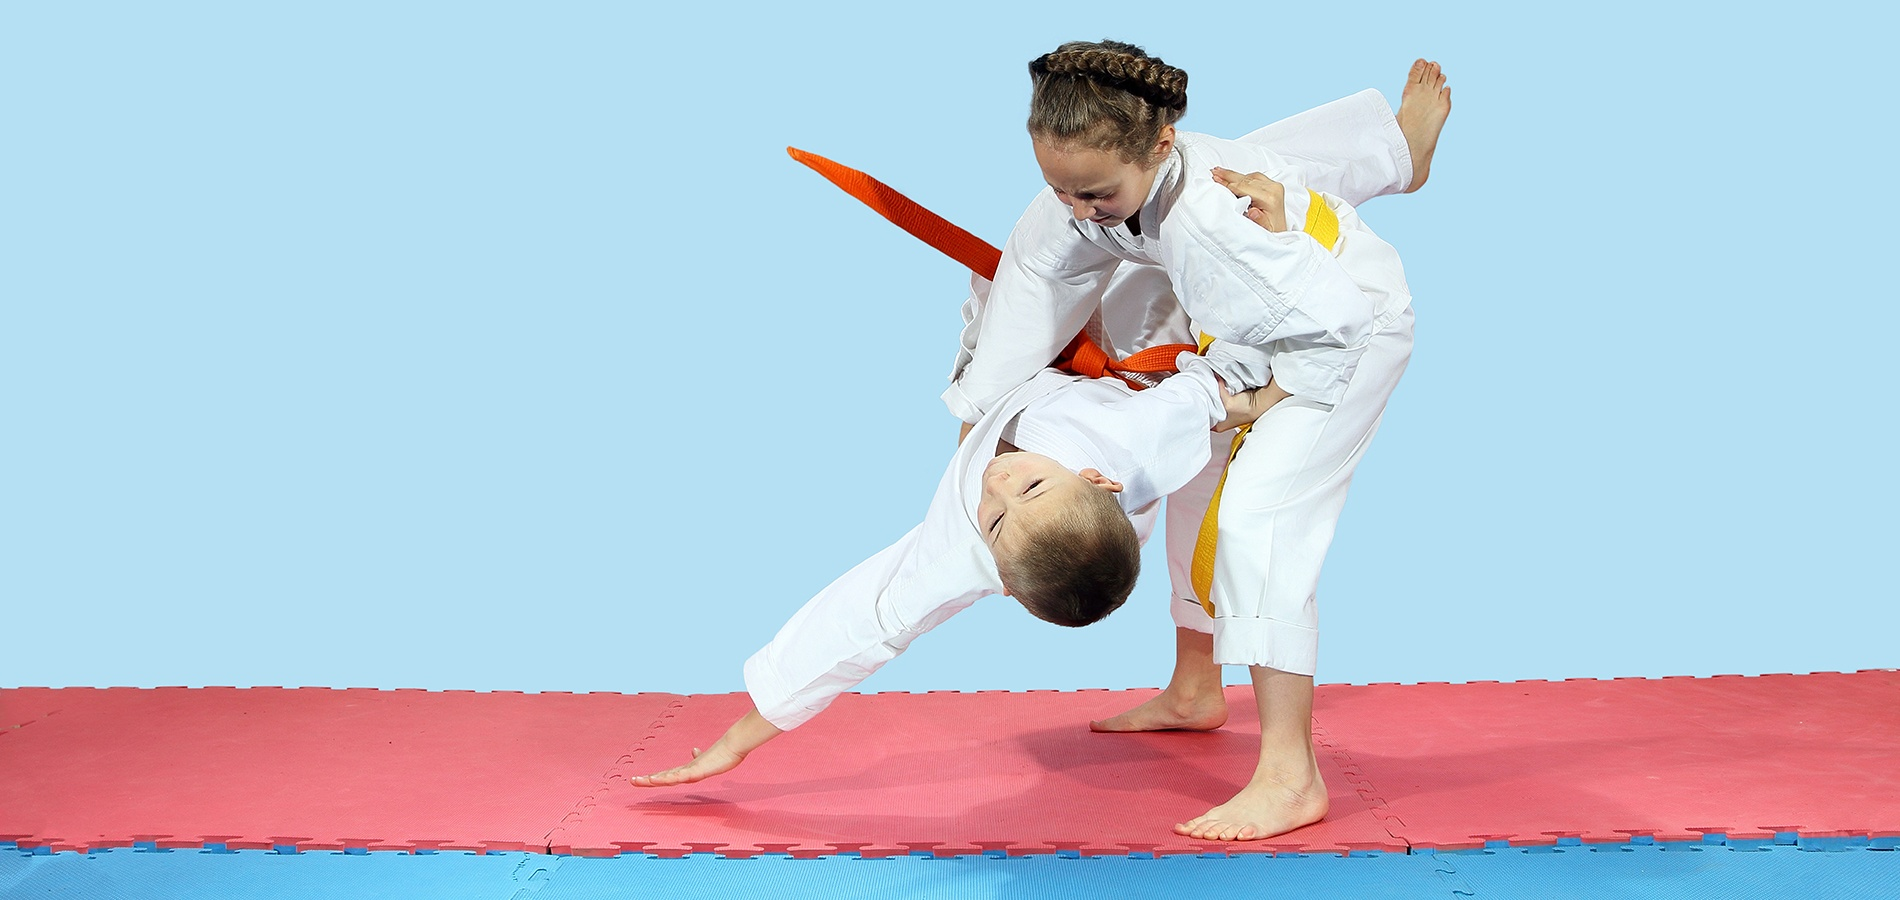 Martial Arts Against Bullying: 5 Important Factors in Building an Anti-Bullying Program